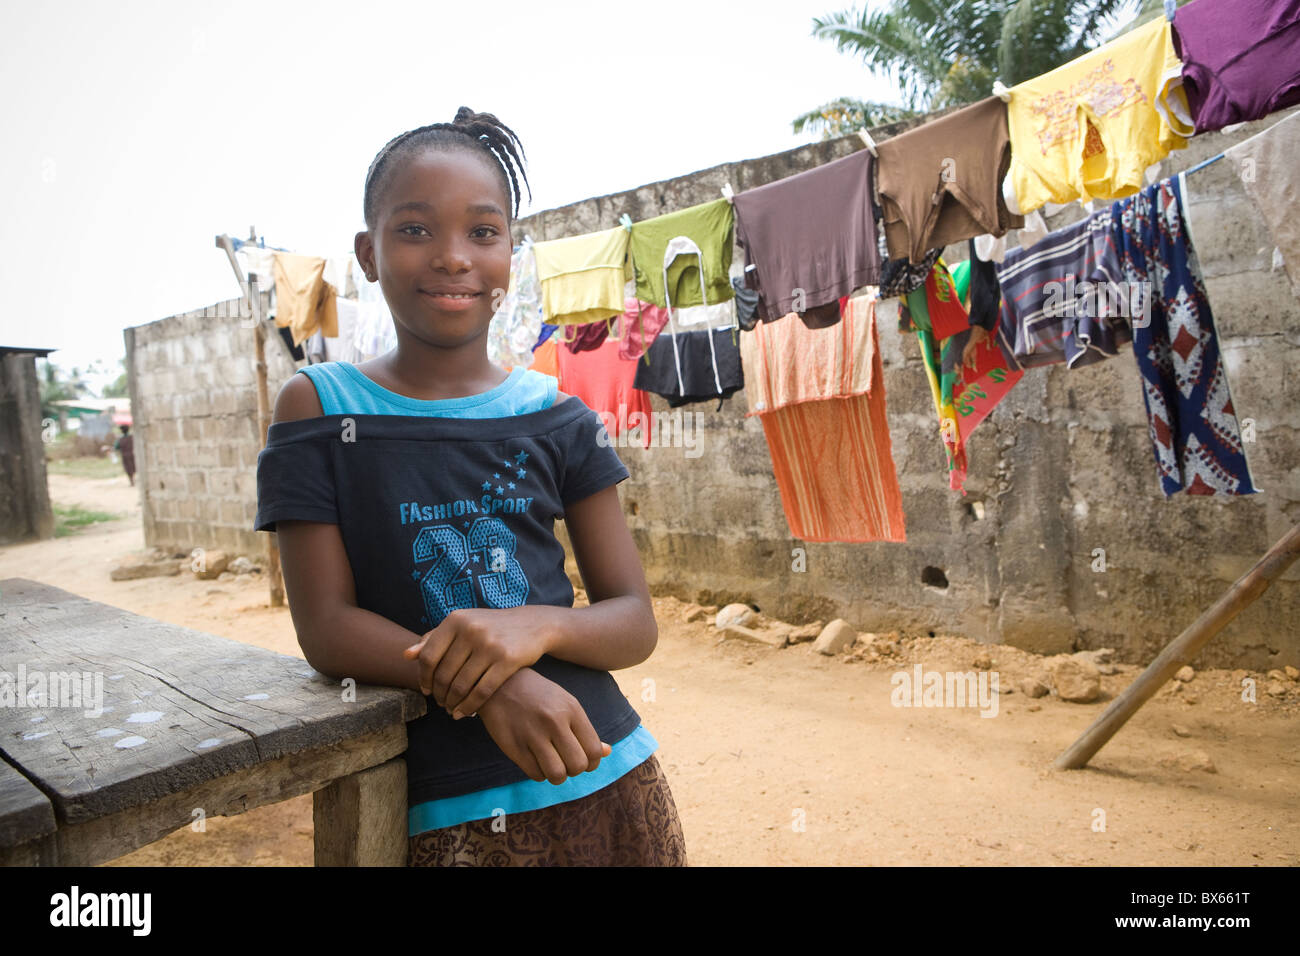 A young girl stands outside her house in Monrovia, Liberia, West Africa. - Stock Image